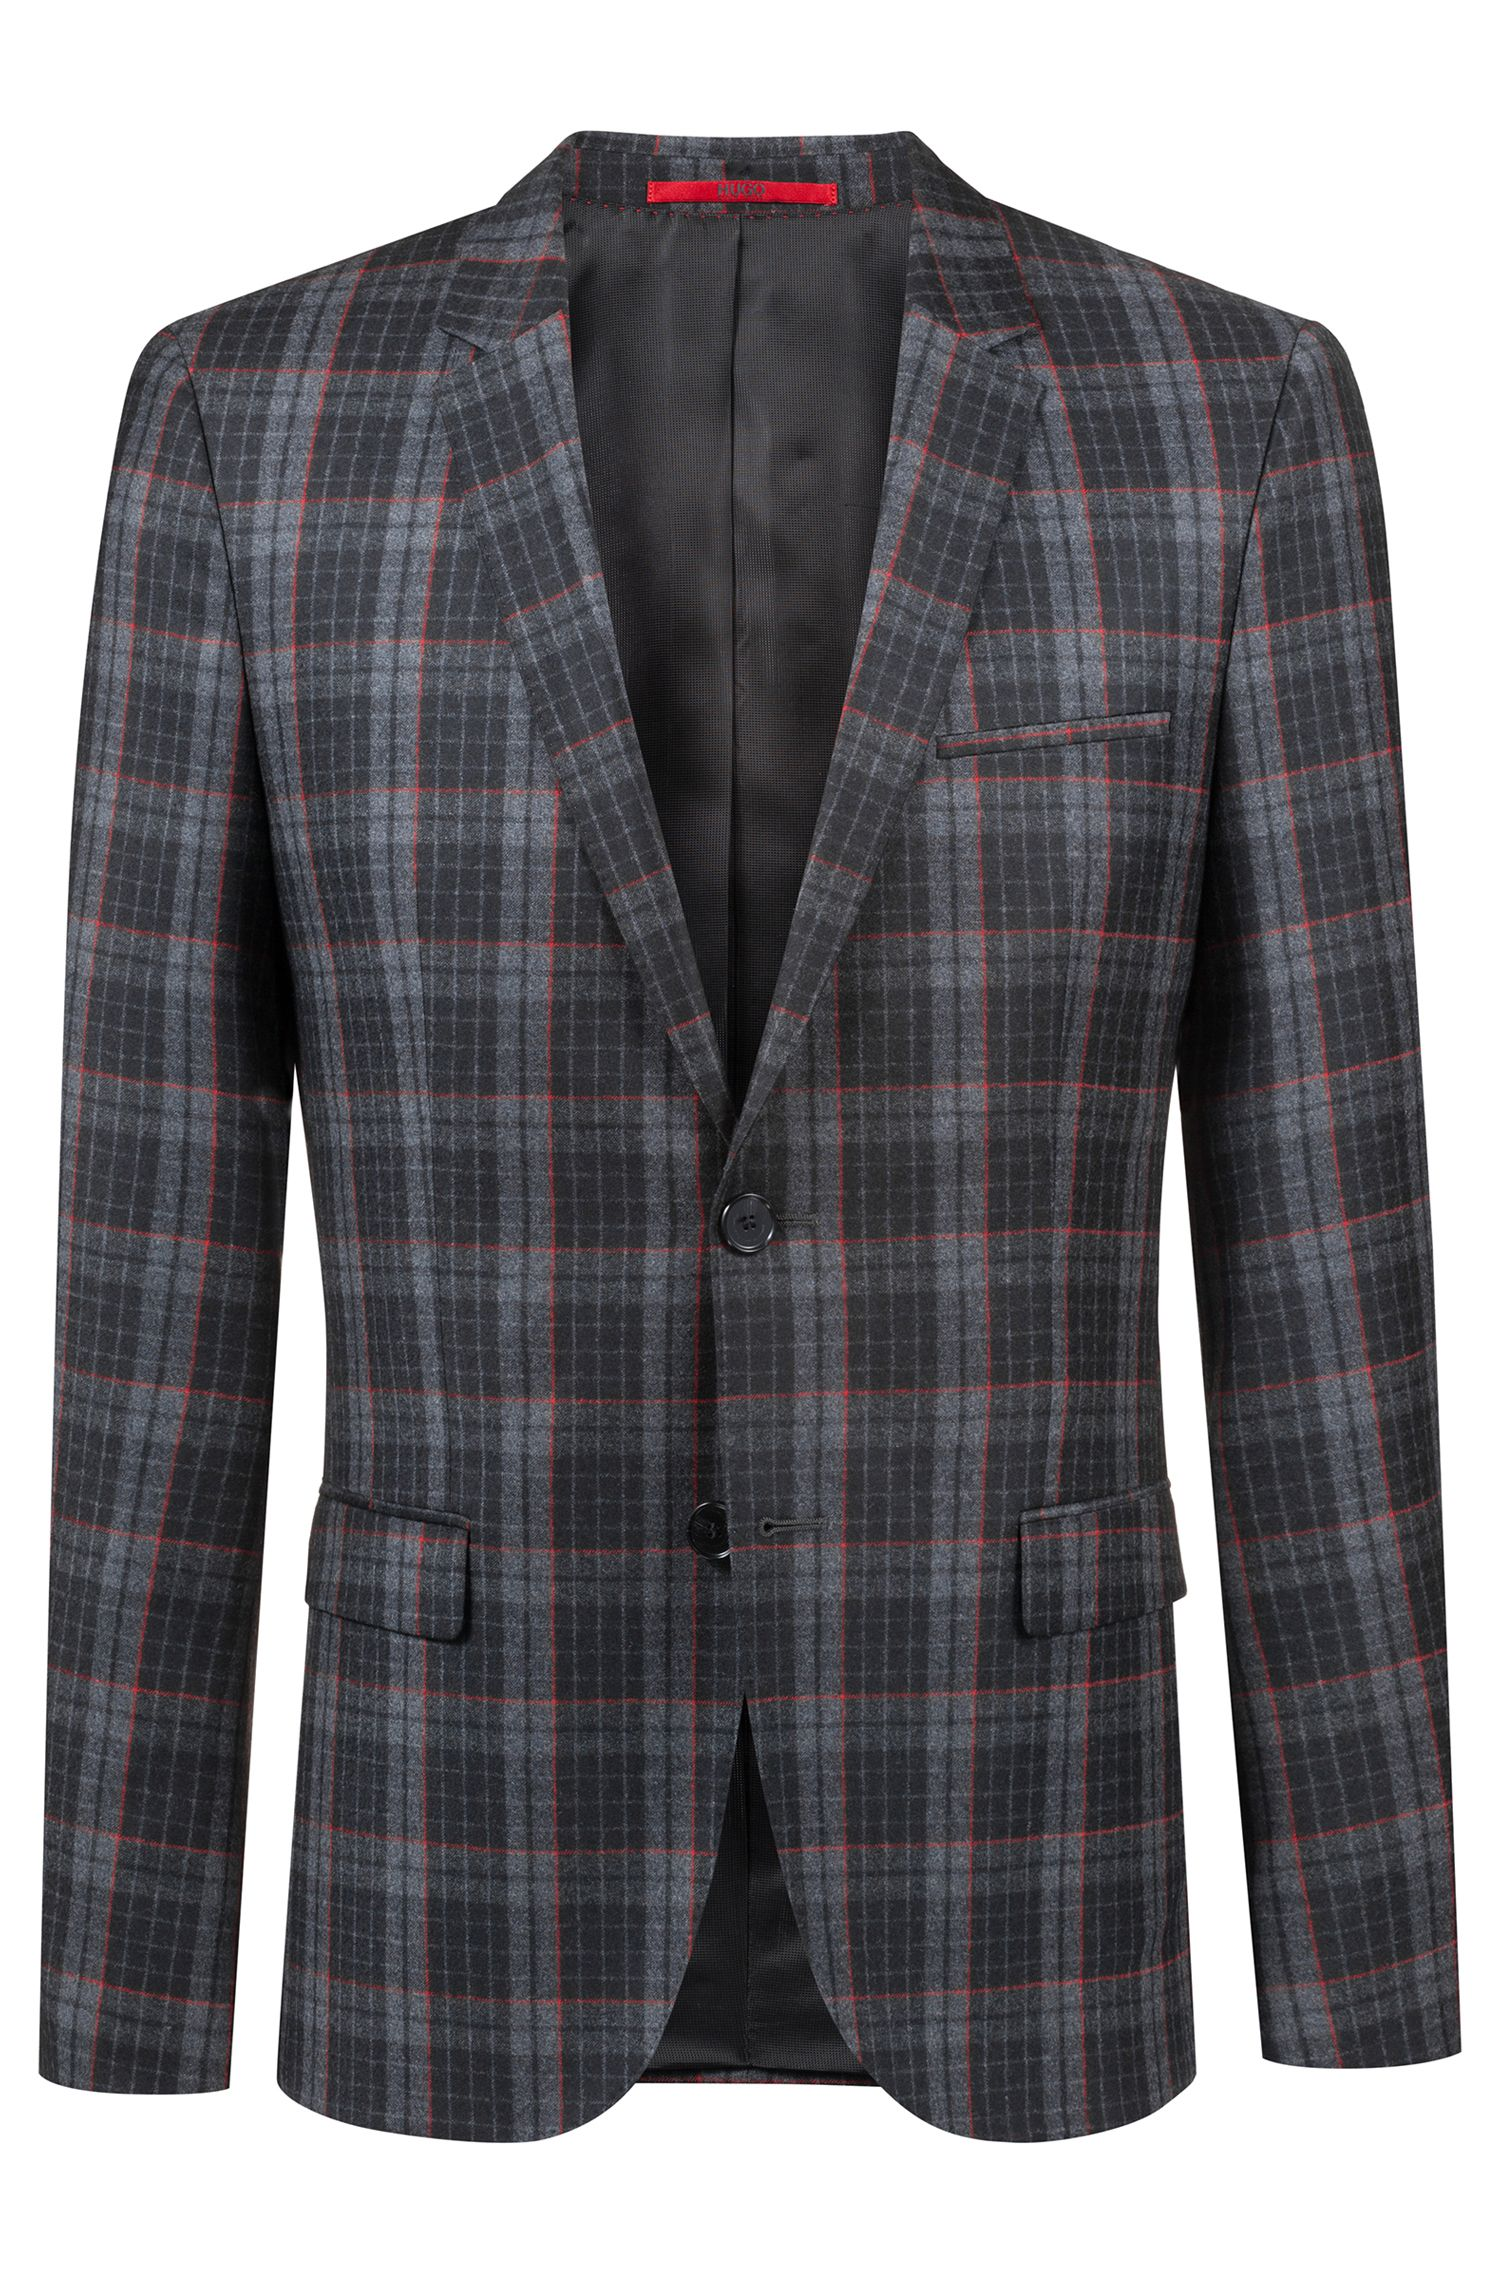 Extra-slim-fit virgin-wool jacket with Glen check pattern, Charcoal